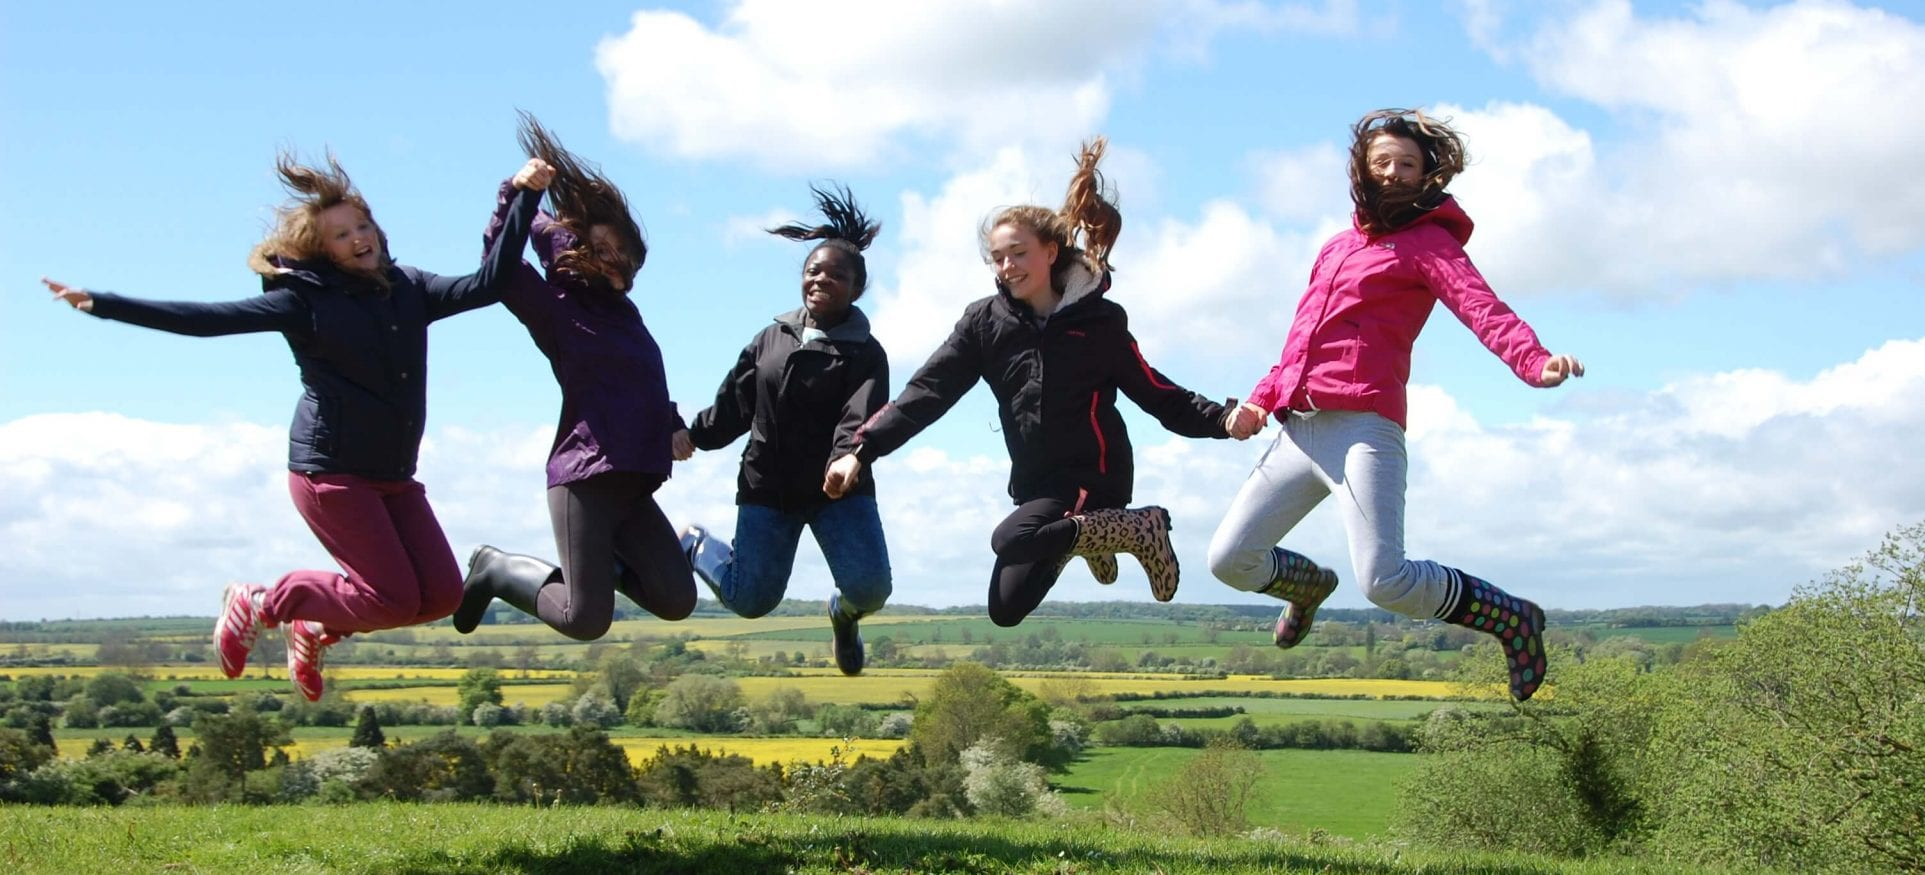 Girls jumping at the Chellington Centre in Bedfordshire